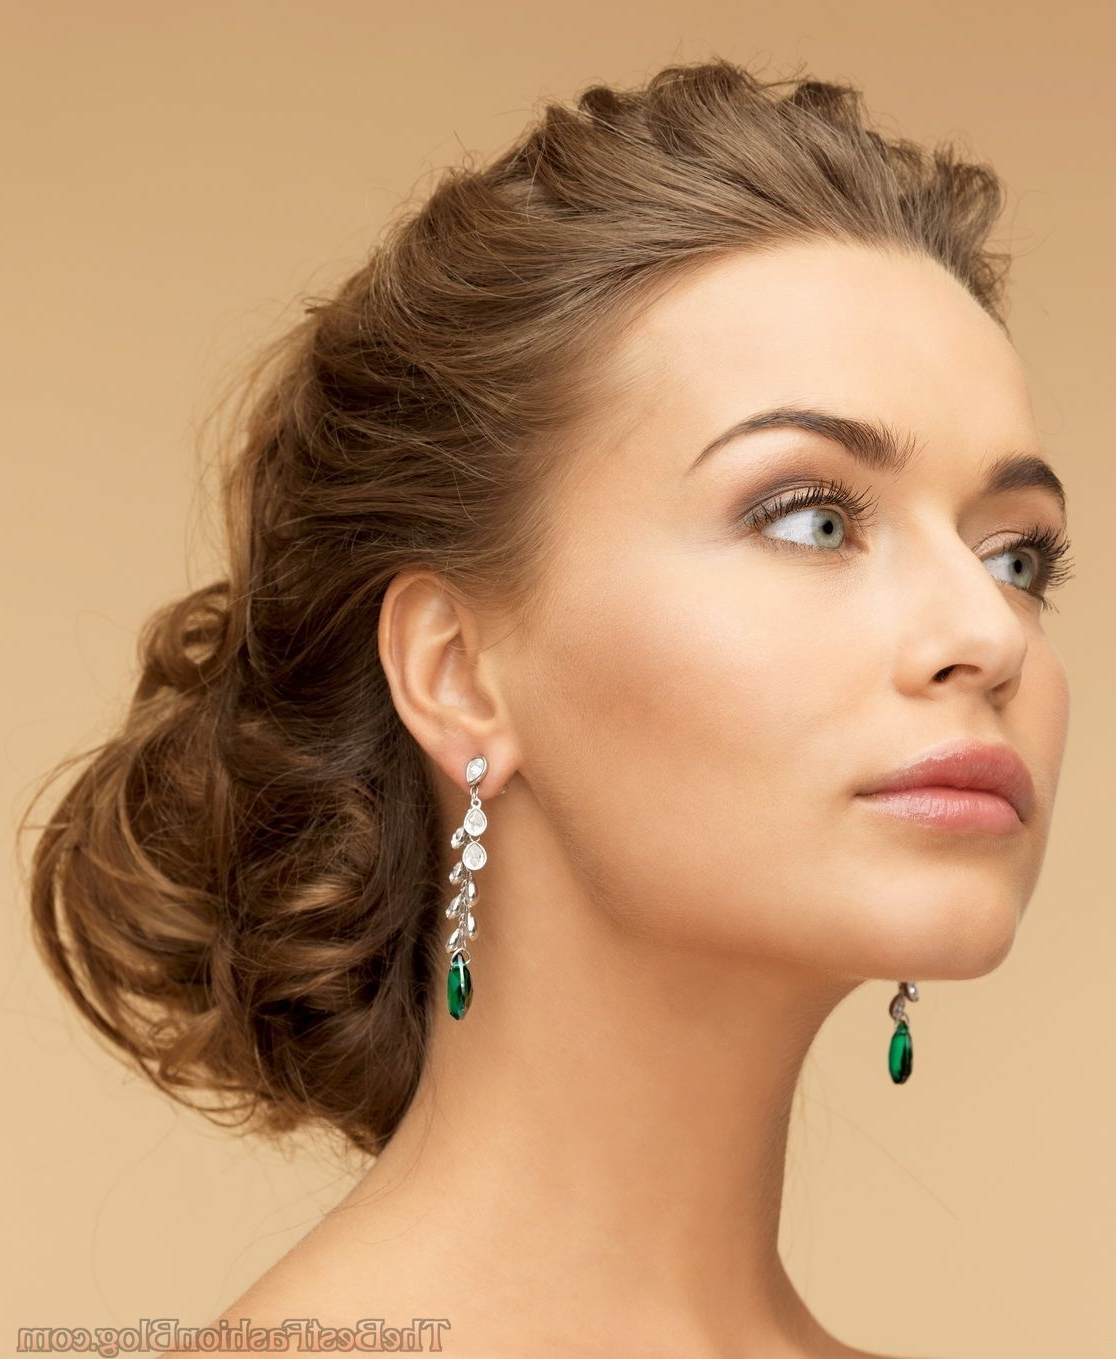 Photo Gallery Of Updo Hairstyles For Sweet 16 Viewing 11 Of